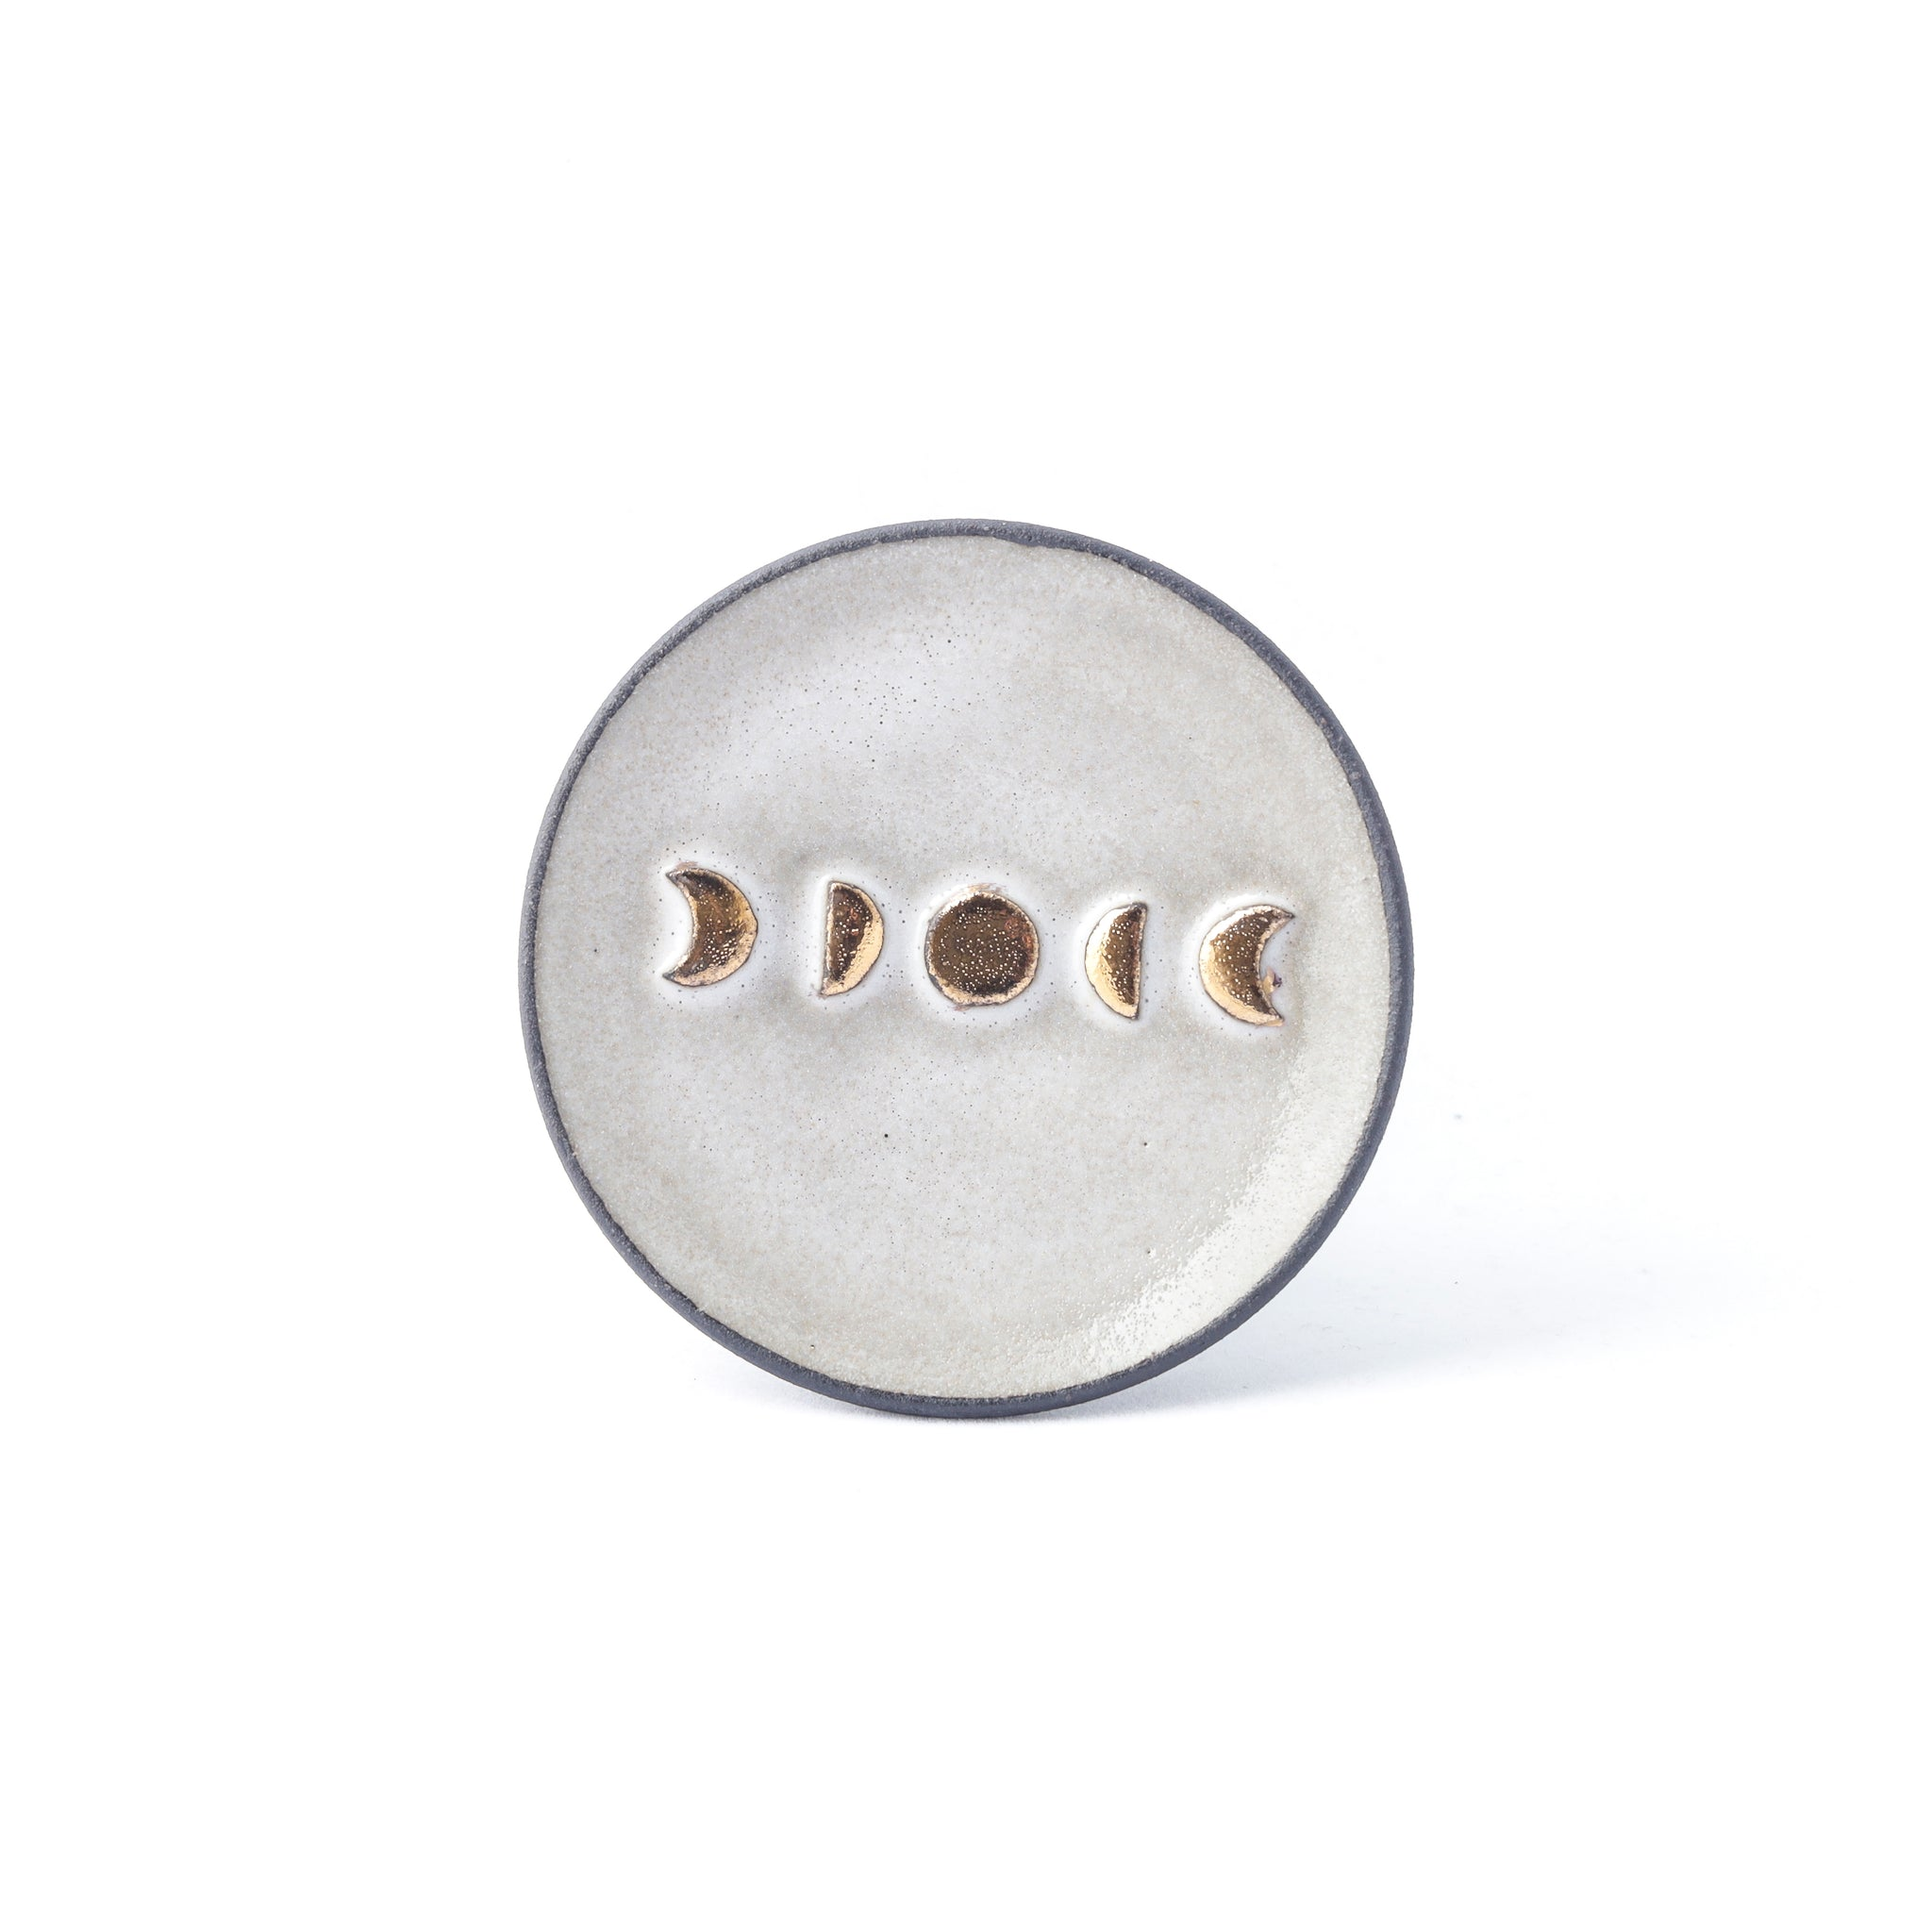 Moon Phase Ring Dish with gold detail